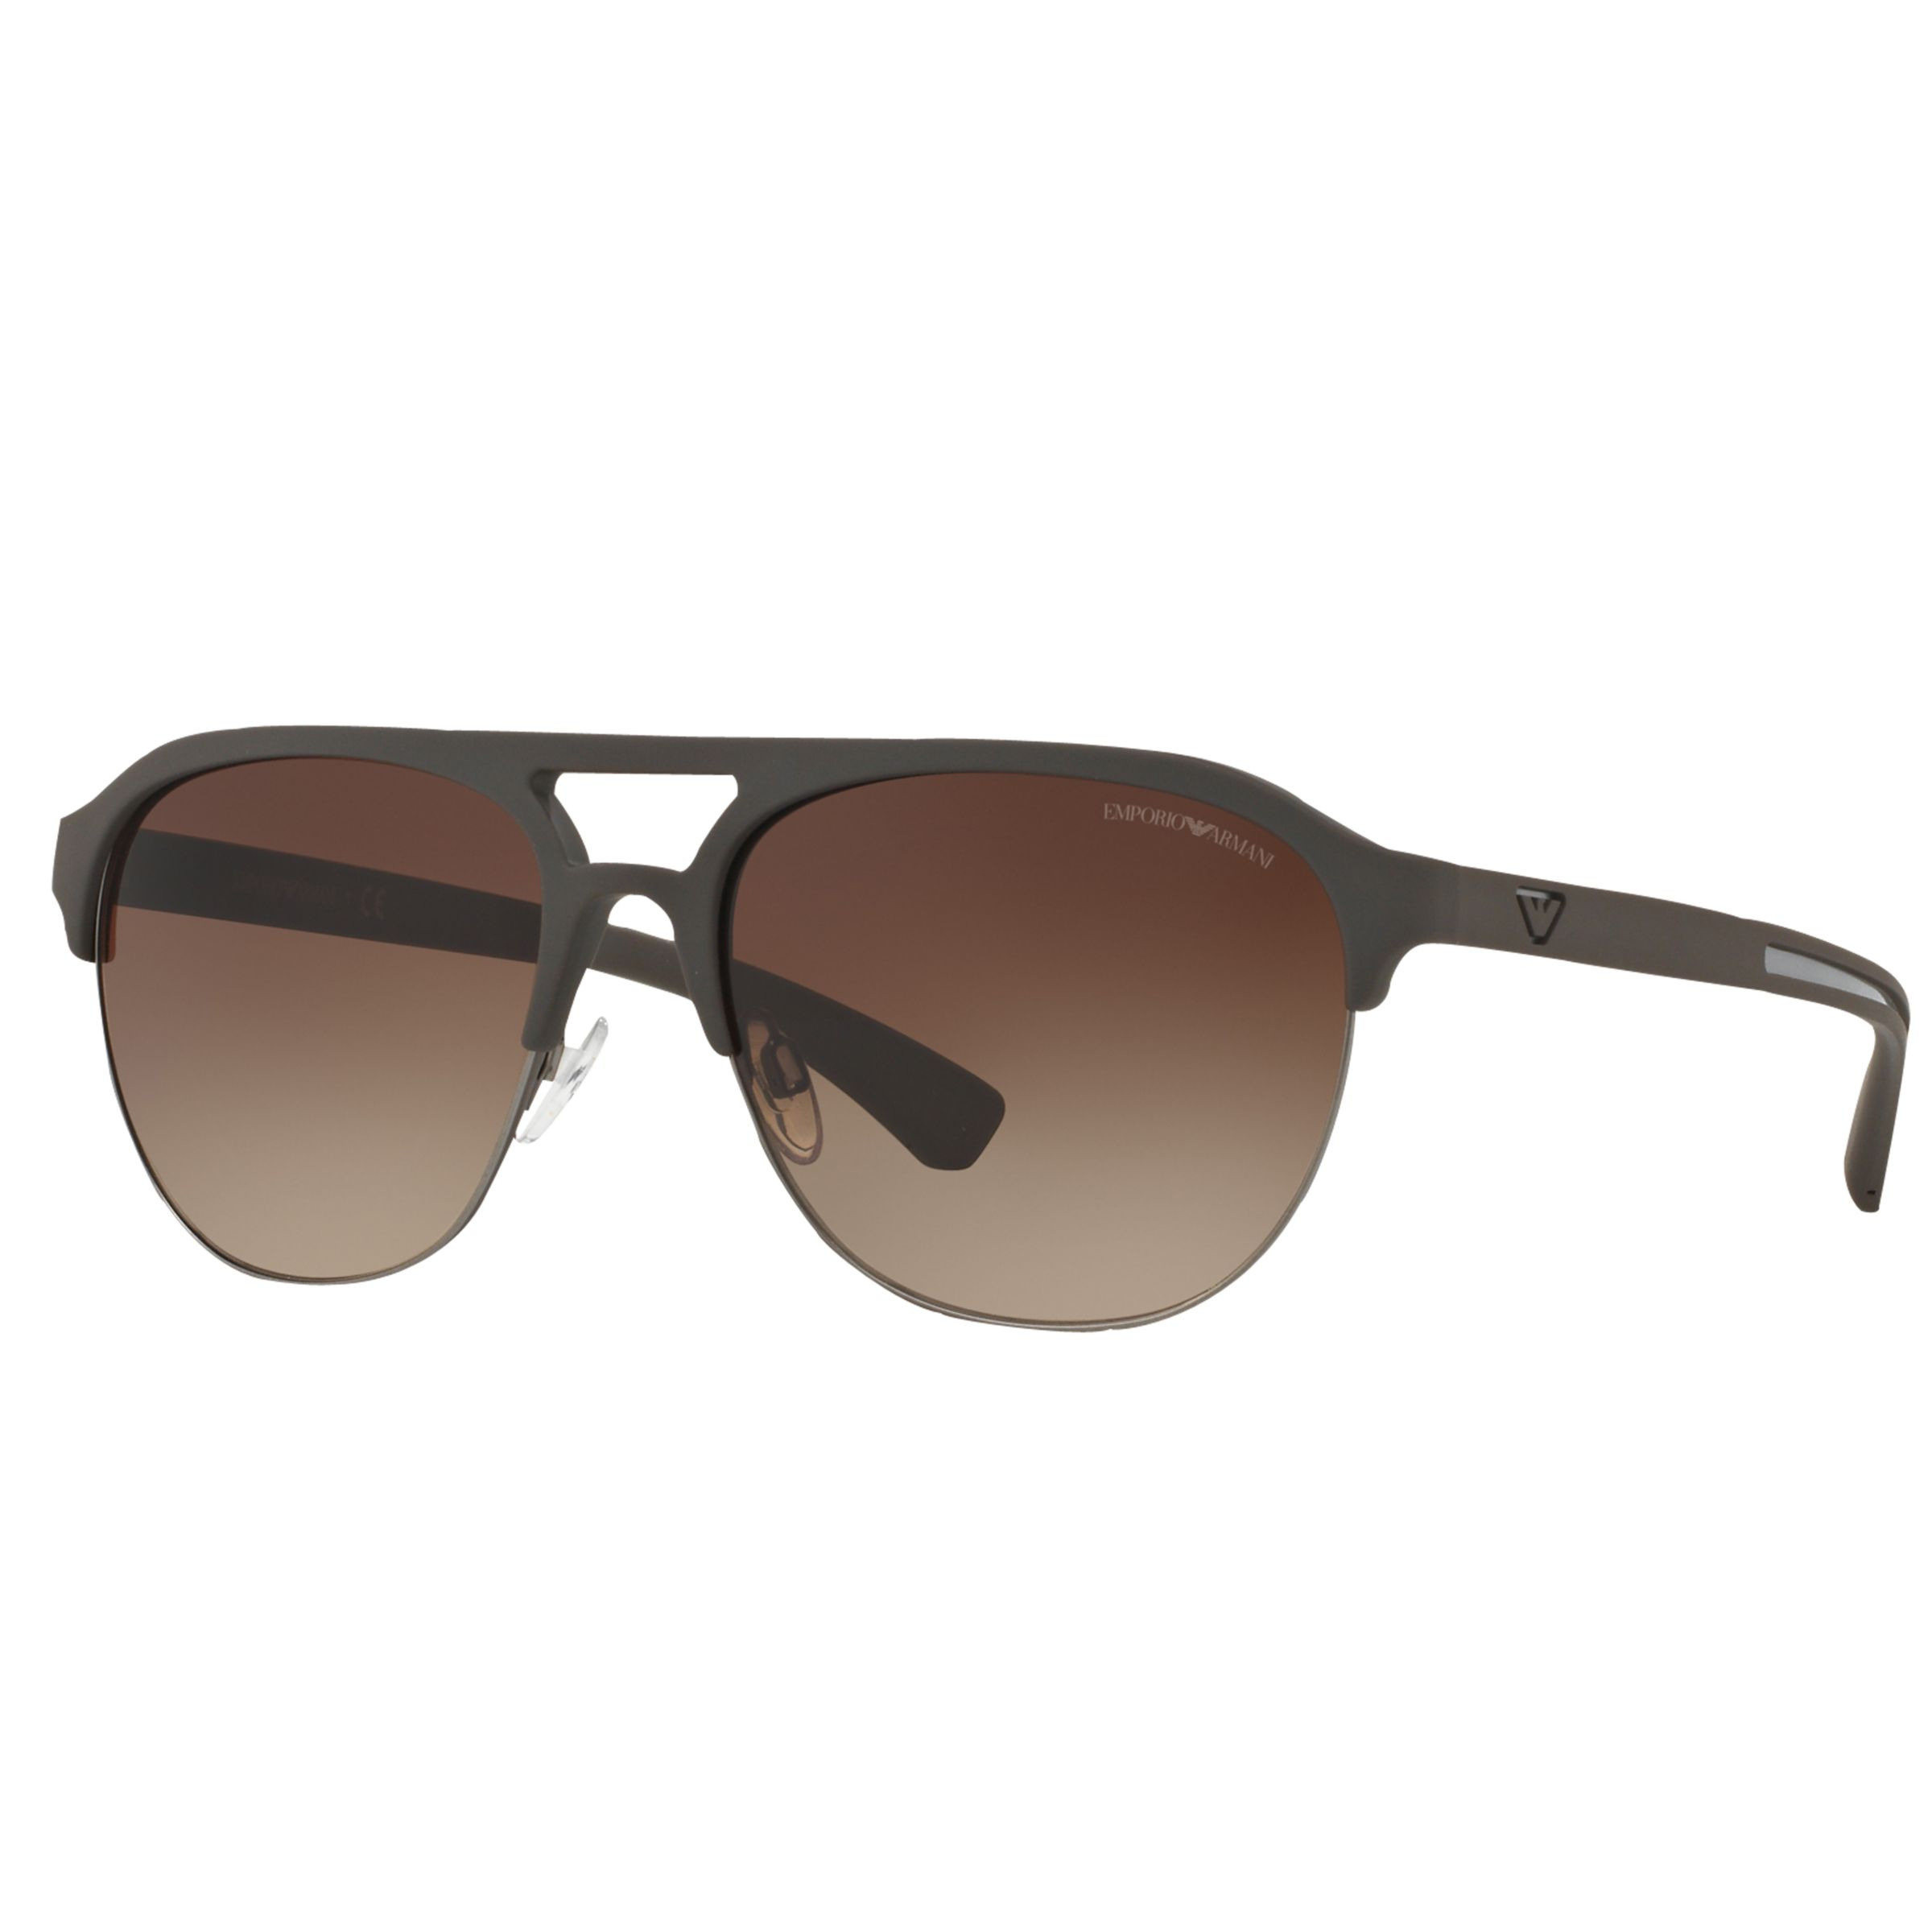 Half Frame Square Glasses : Buy Emporio Armani EA4077 Half Frame Square Sunglasses ...